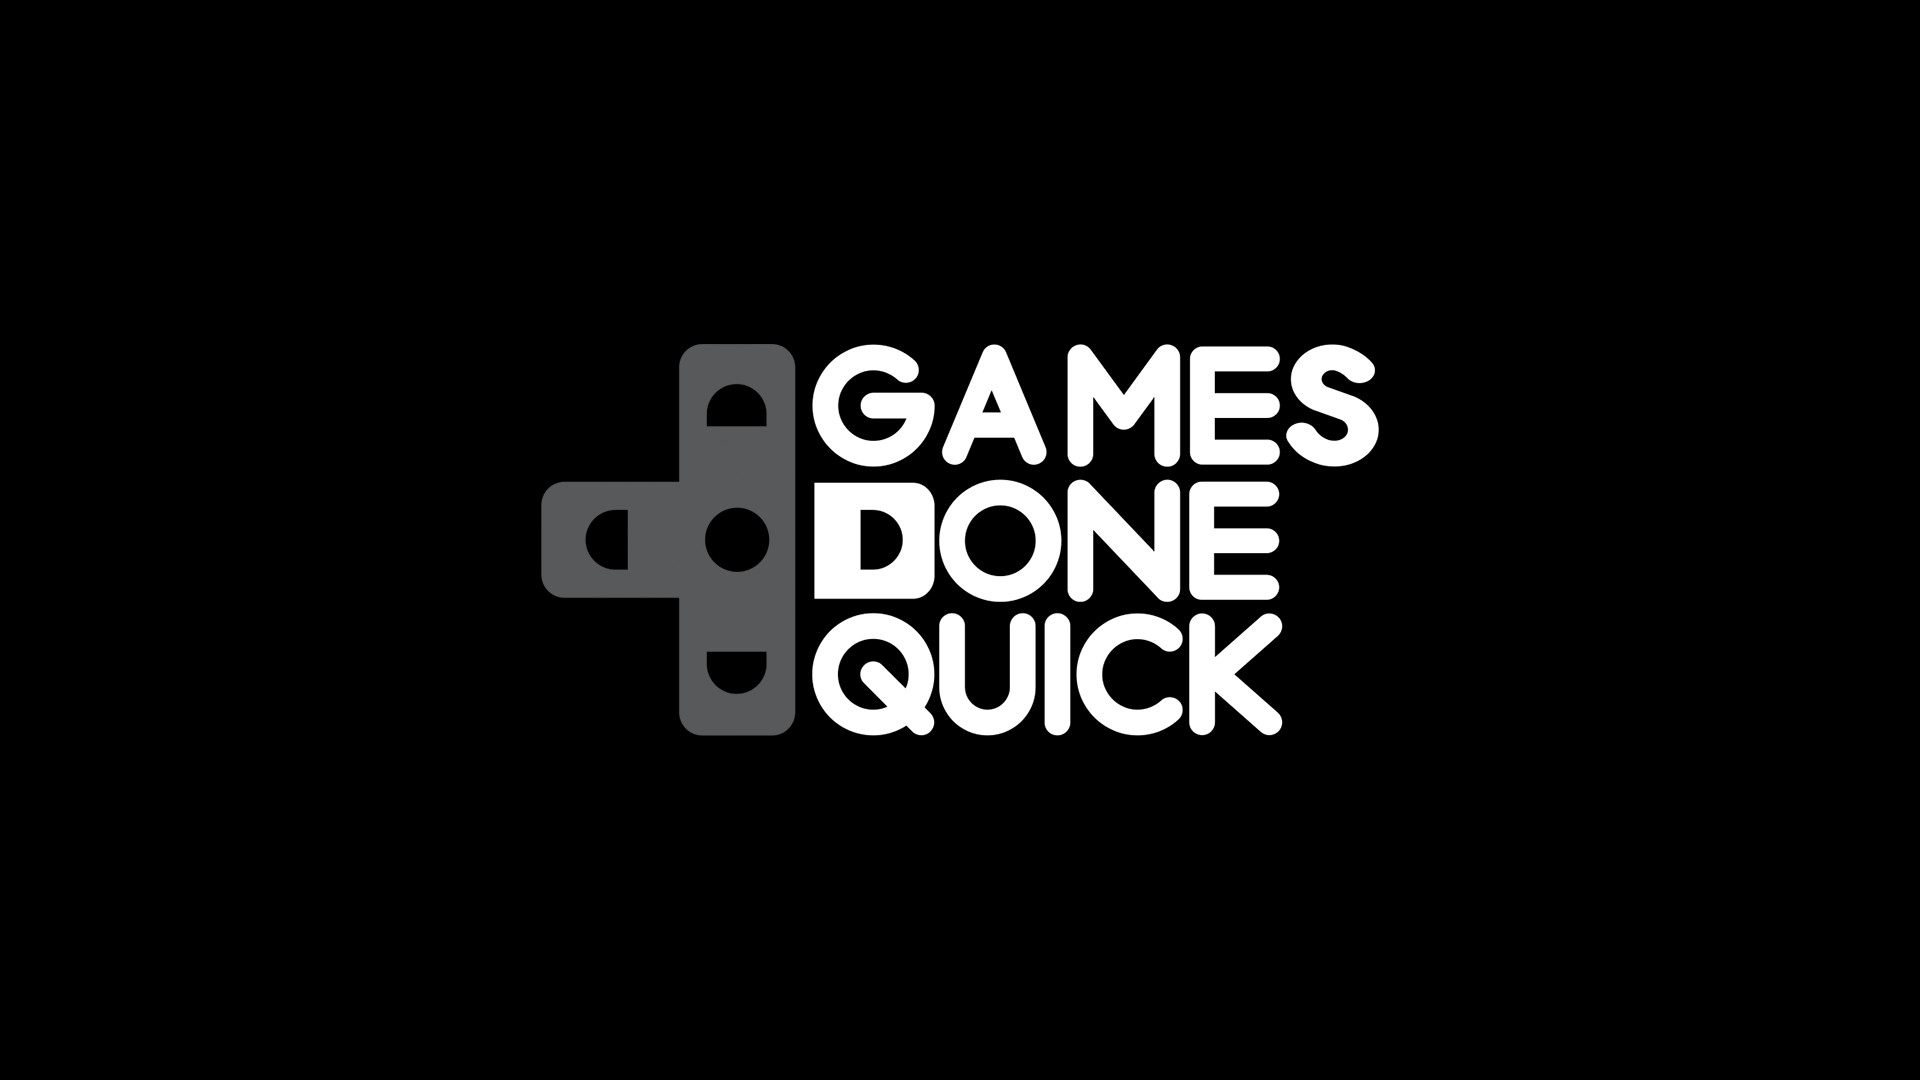 Awesome Games Done Quick 2020.Awesome Games Done Quick 2020 Destiny 2 Bloodlines And